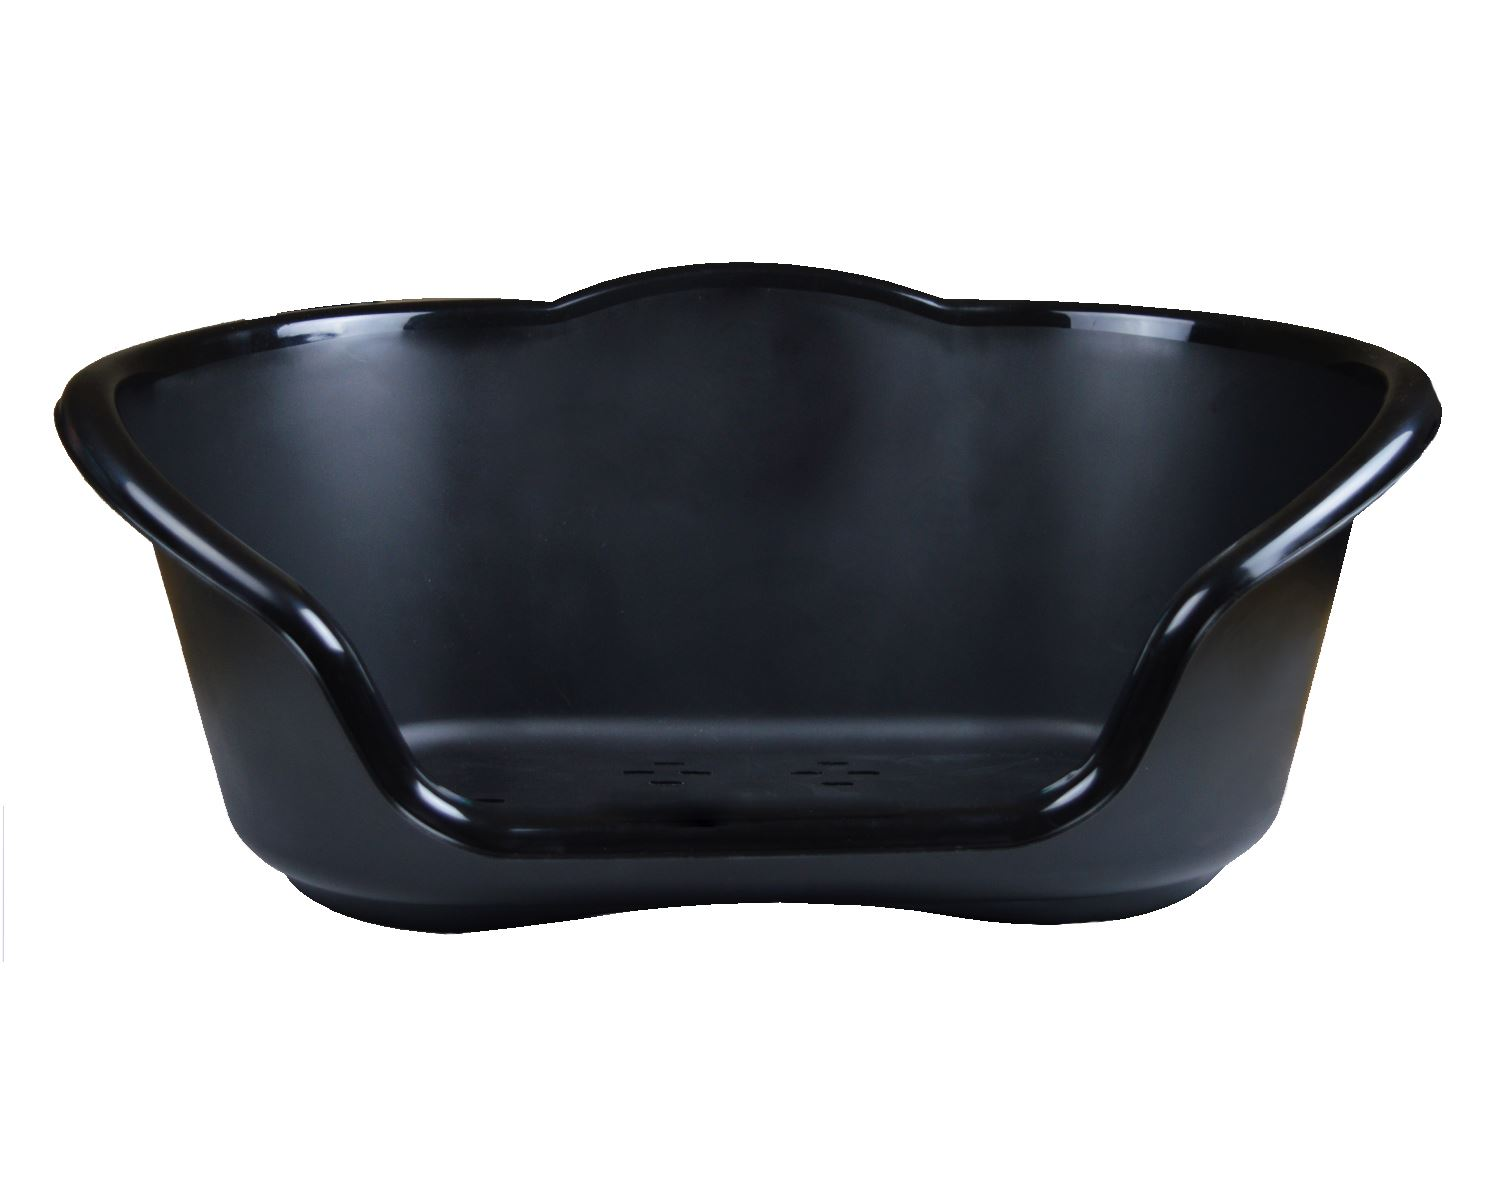 thumbnail 6 - Plastic-Dog-Bed-Heavy-Duty-Waterproof-Dog-Bed-Pet-Bed-Puppy-Cat-Cushion-Basket